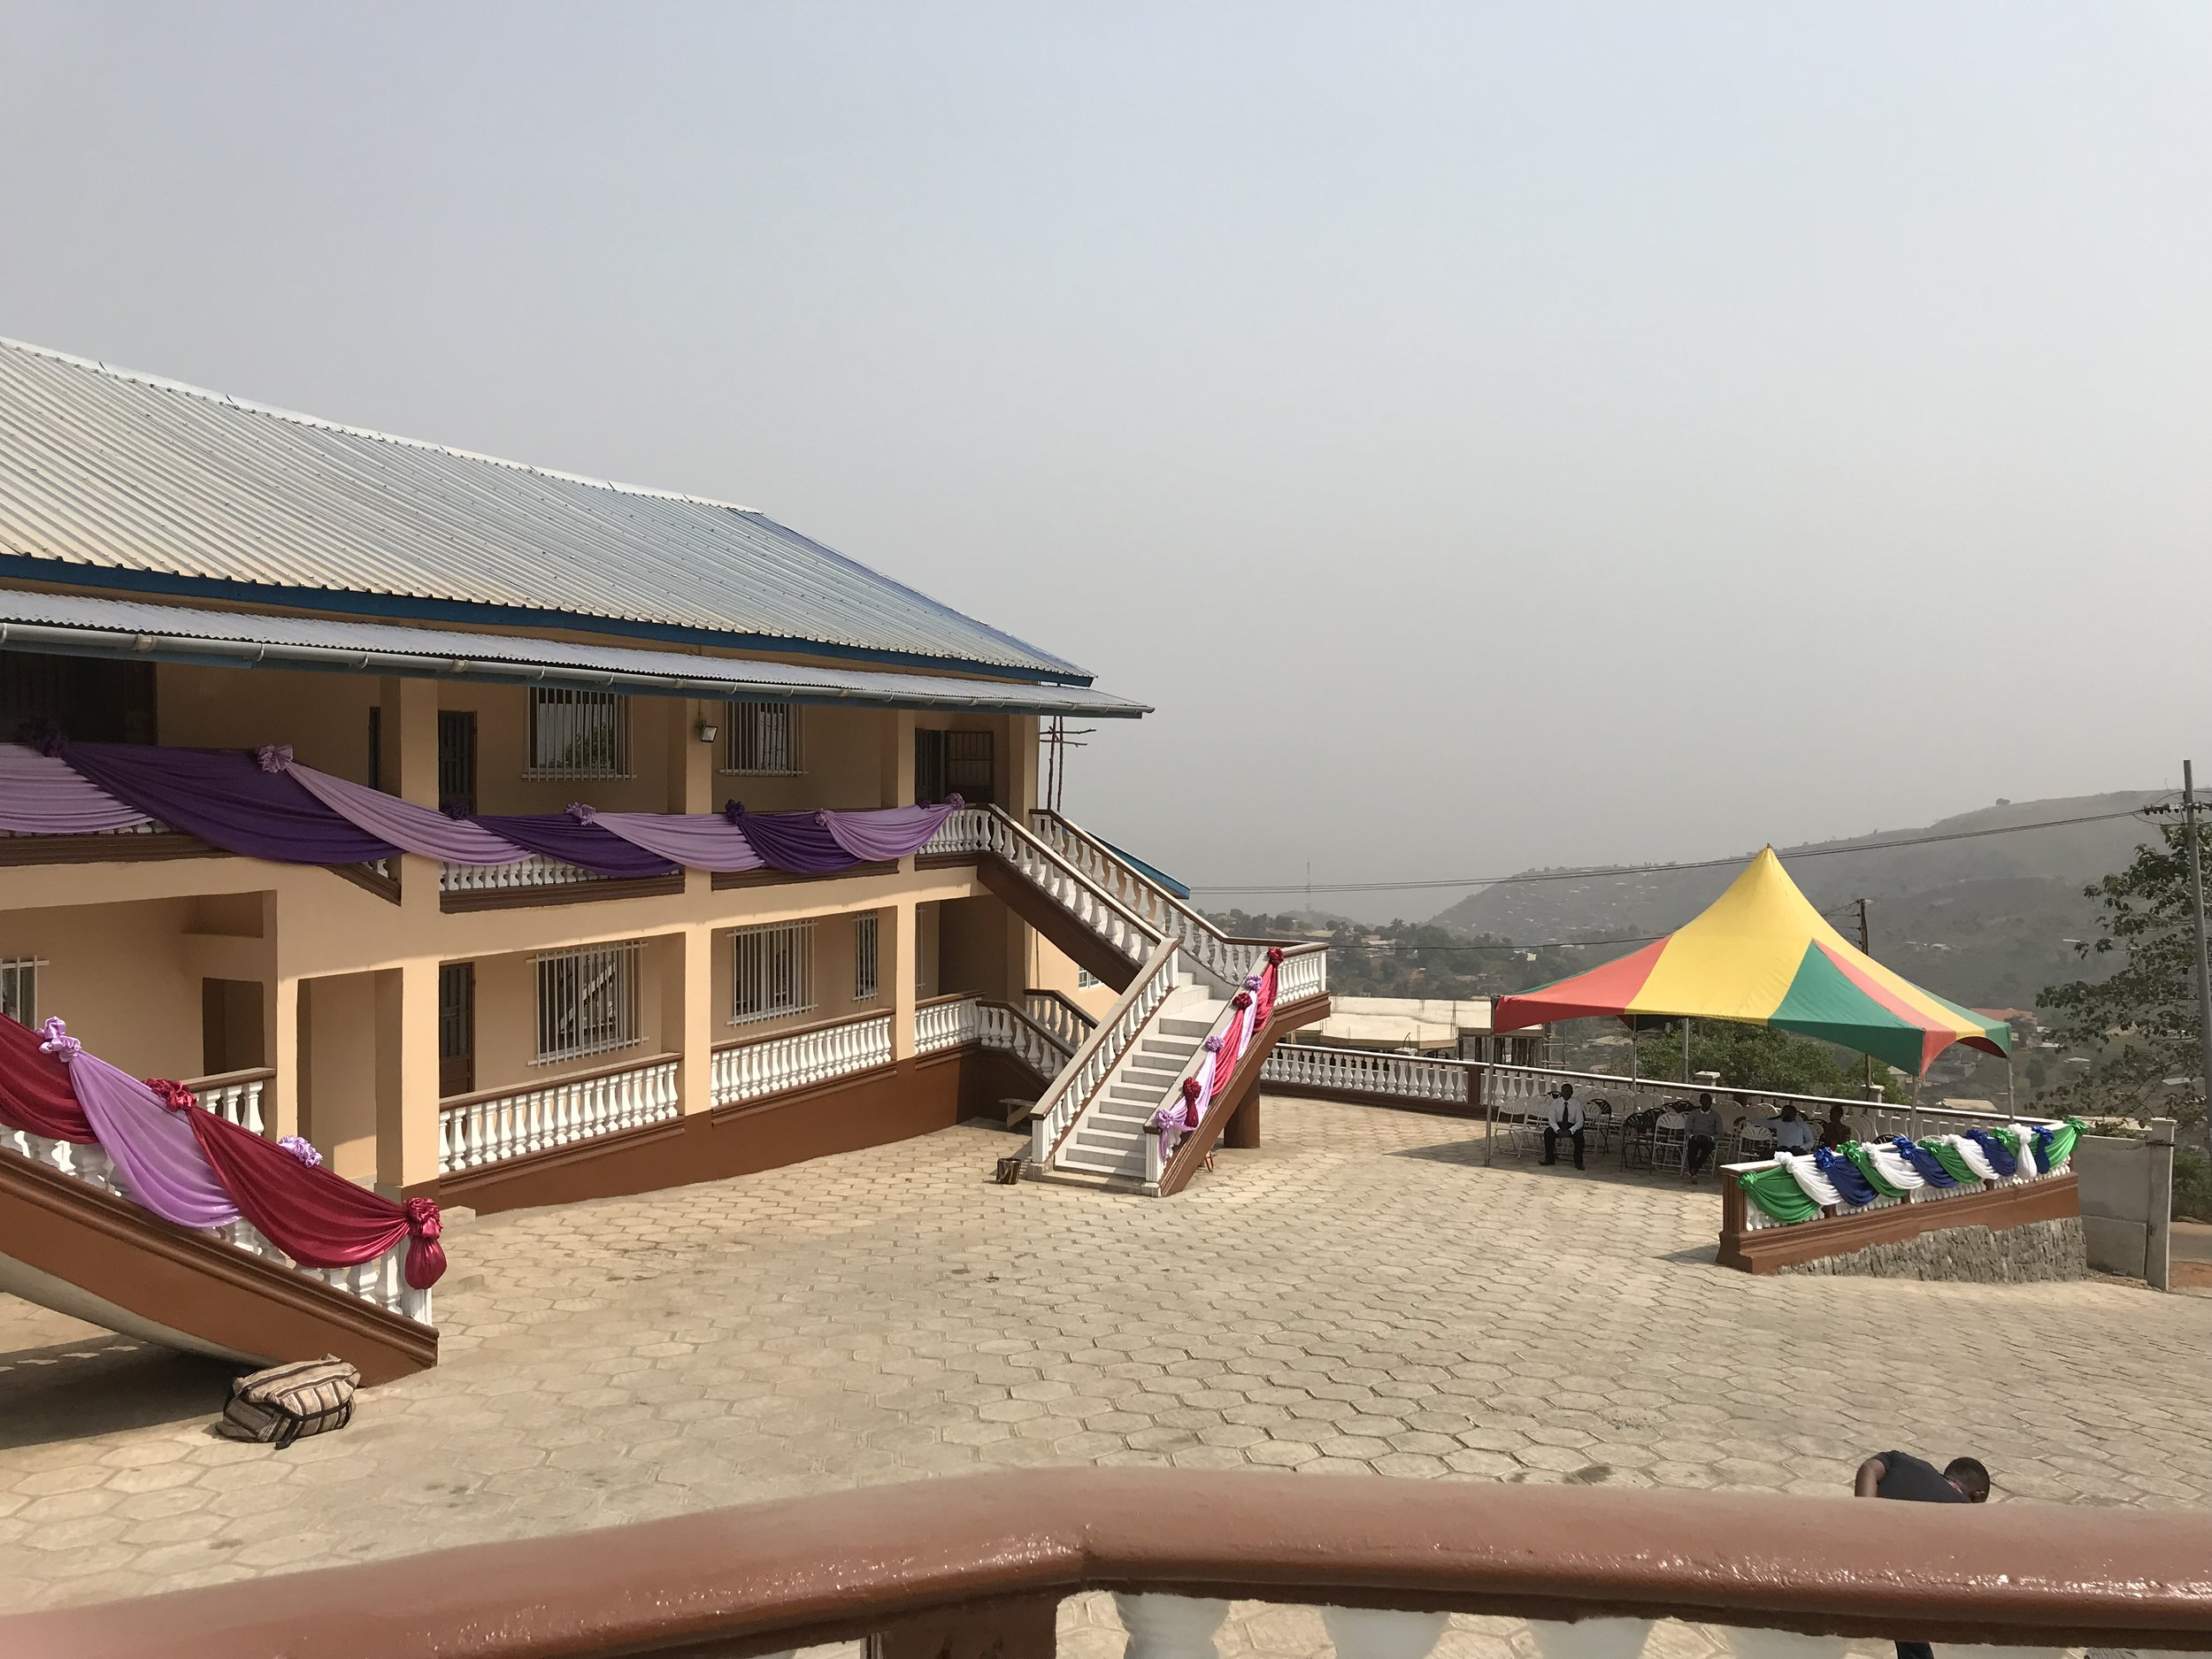 The UMU Bishop Wenner School of Theology from the vantage point of the amphitheater